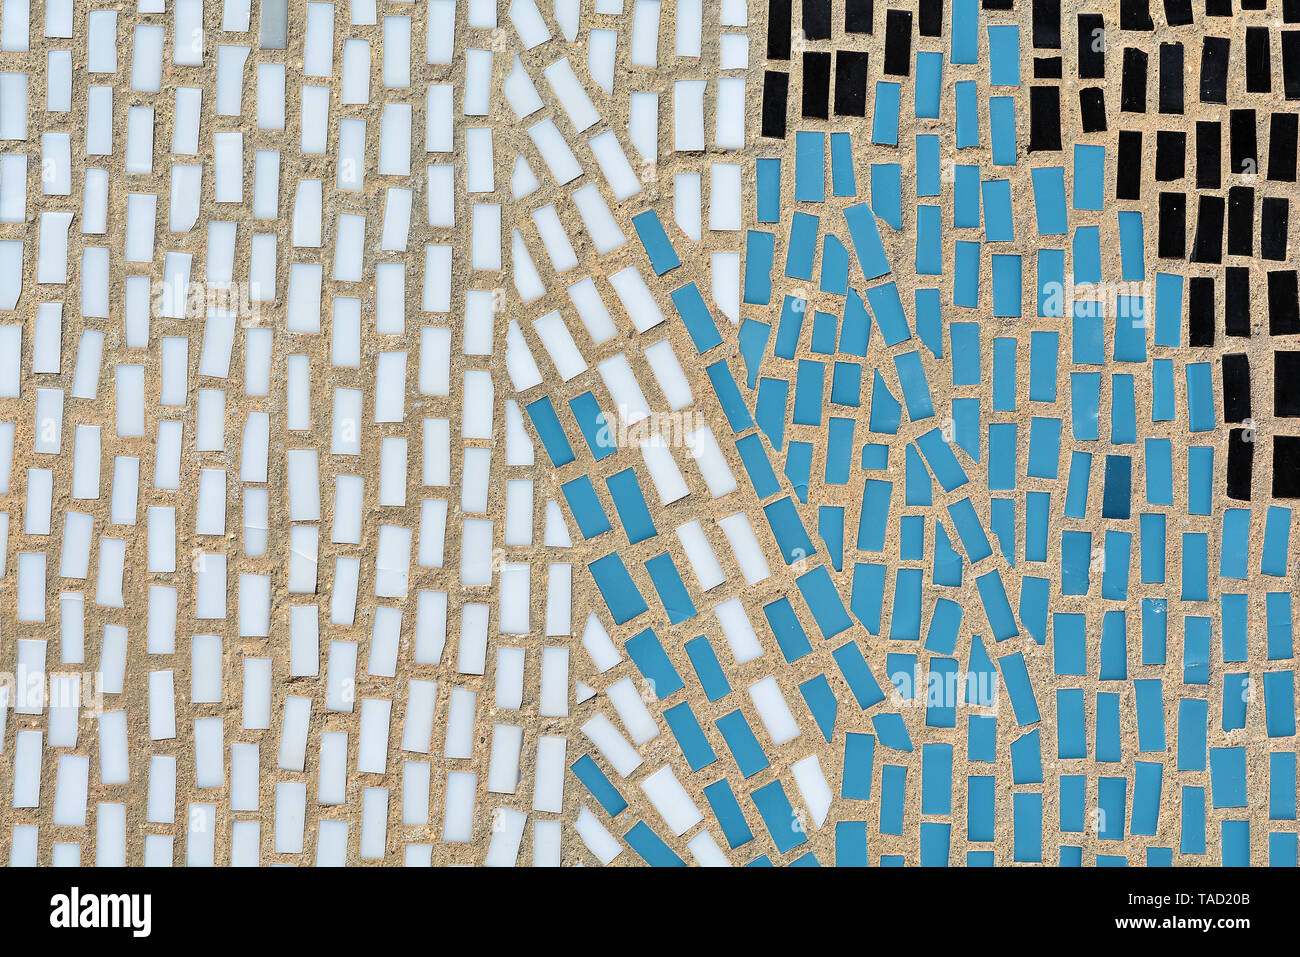 Detail of a mosaic on a house wall in Potsdam - Stock Image